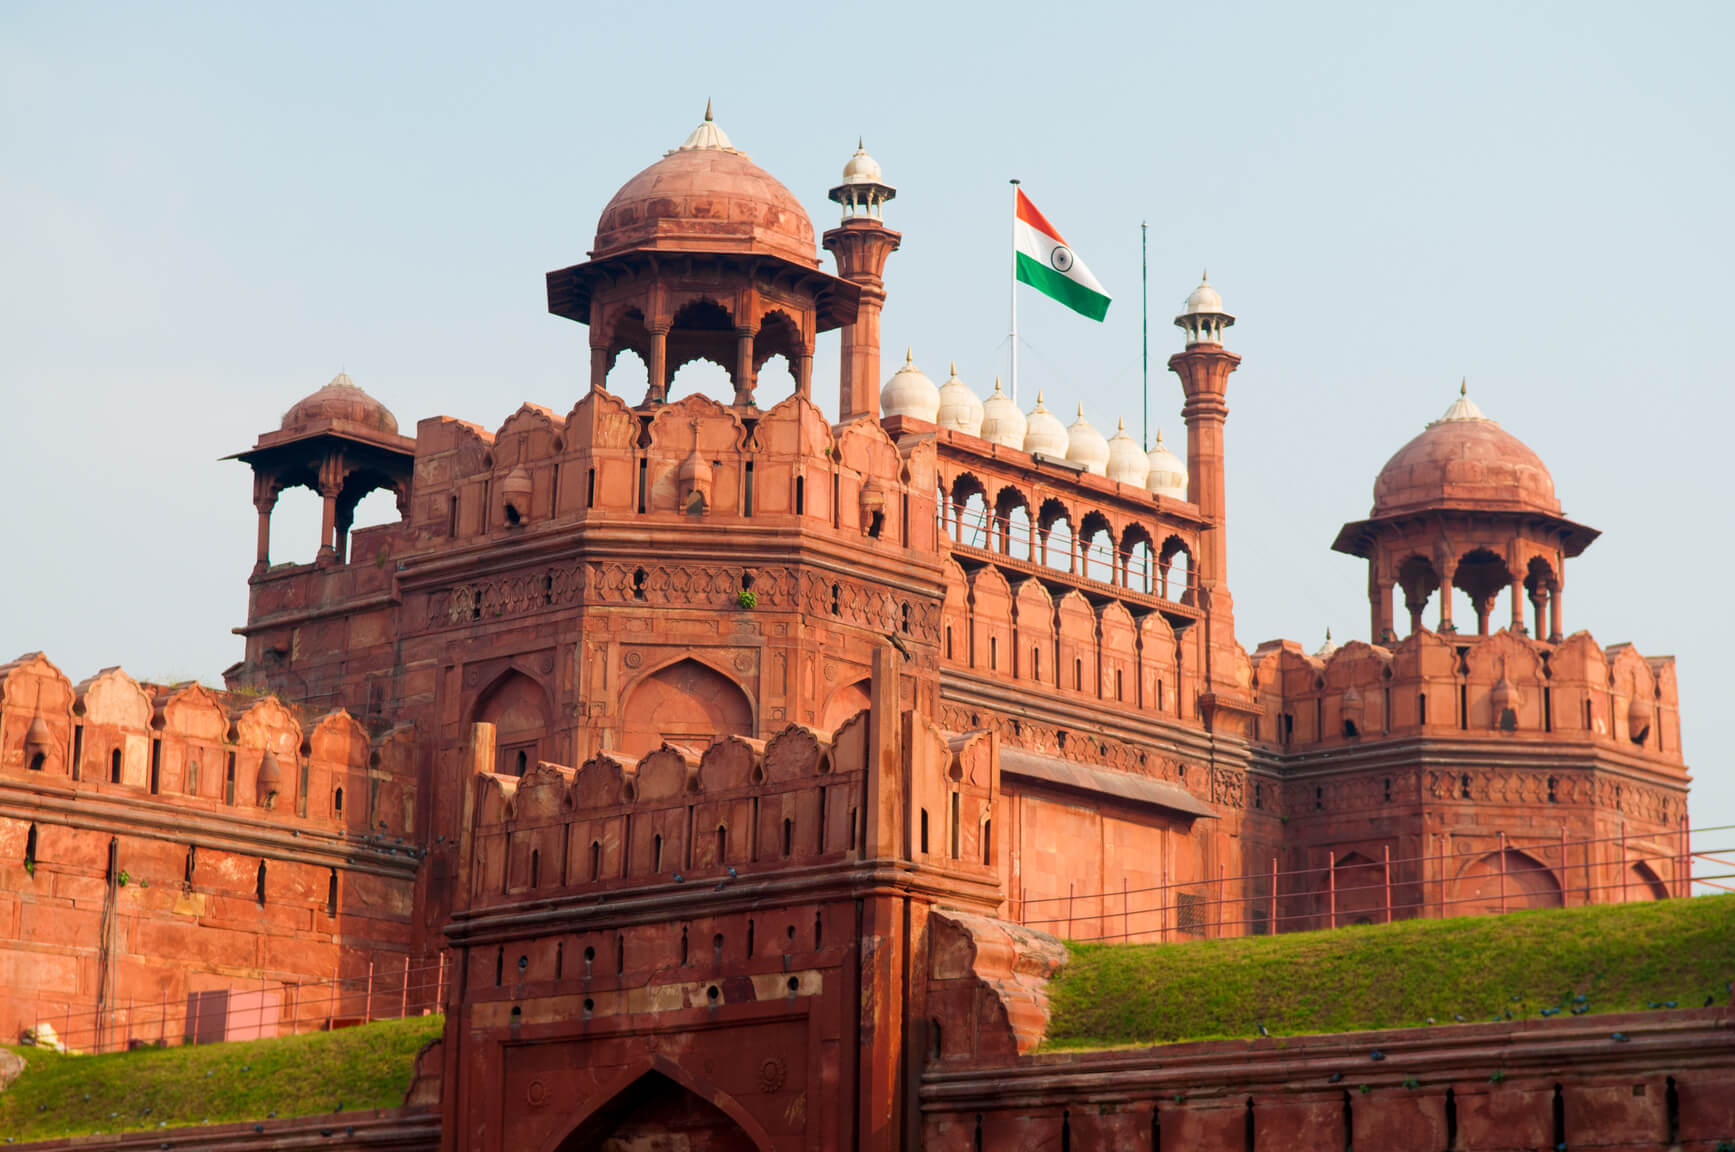 Milan, Italy to Delhi, India for only €284 roundtrip